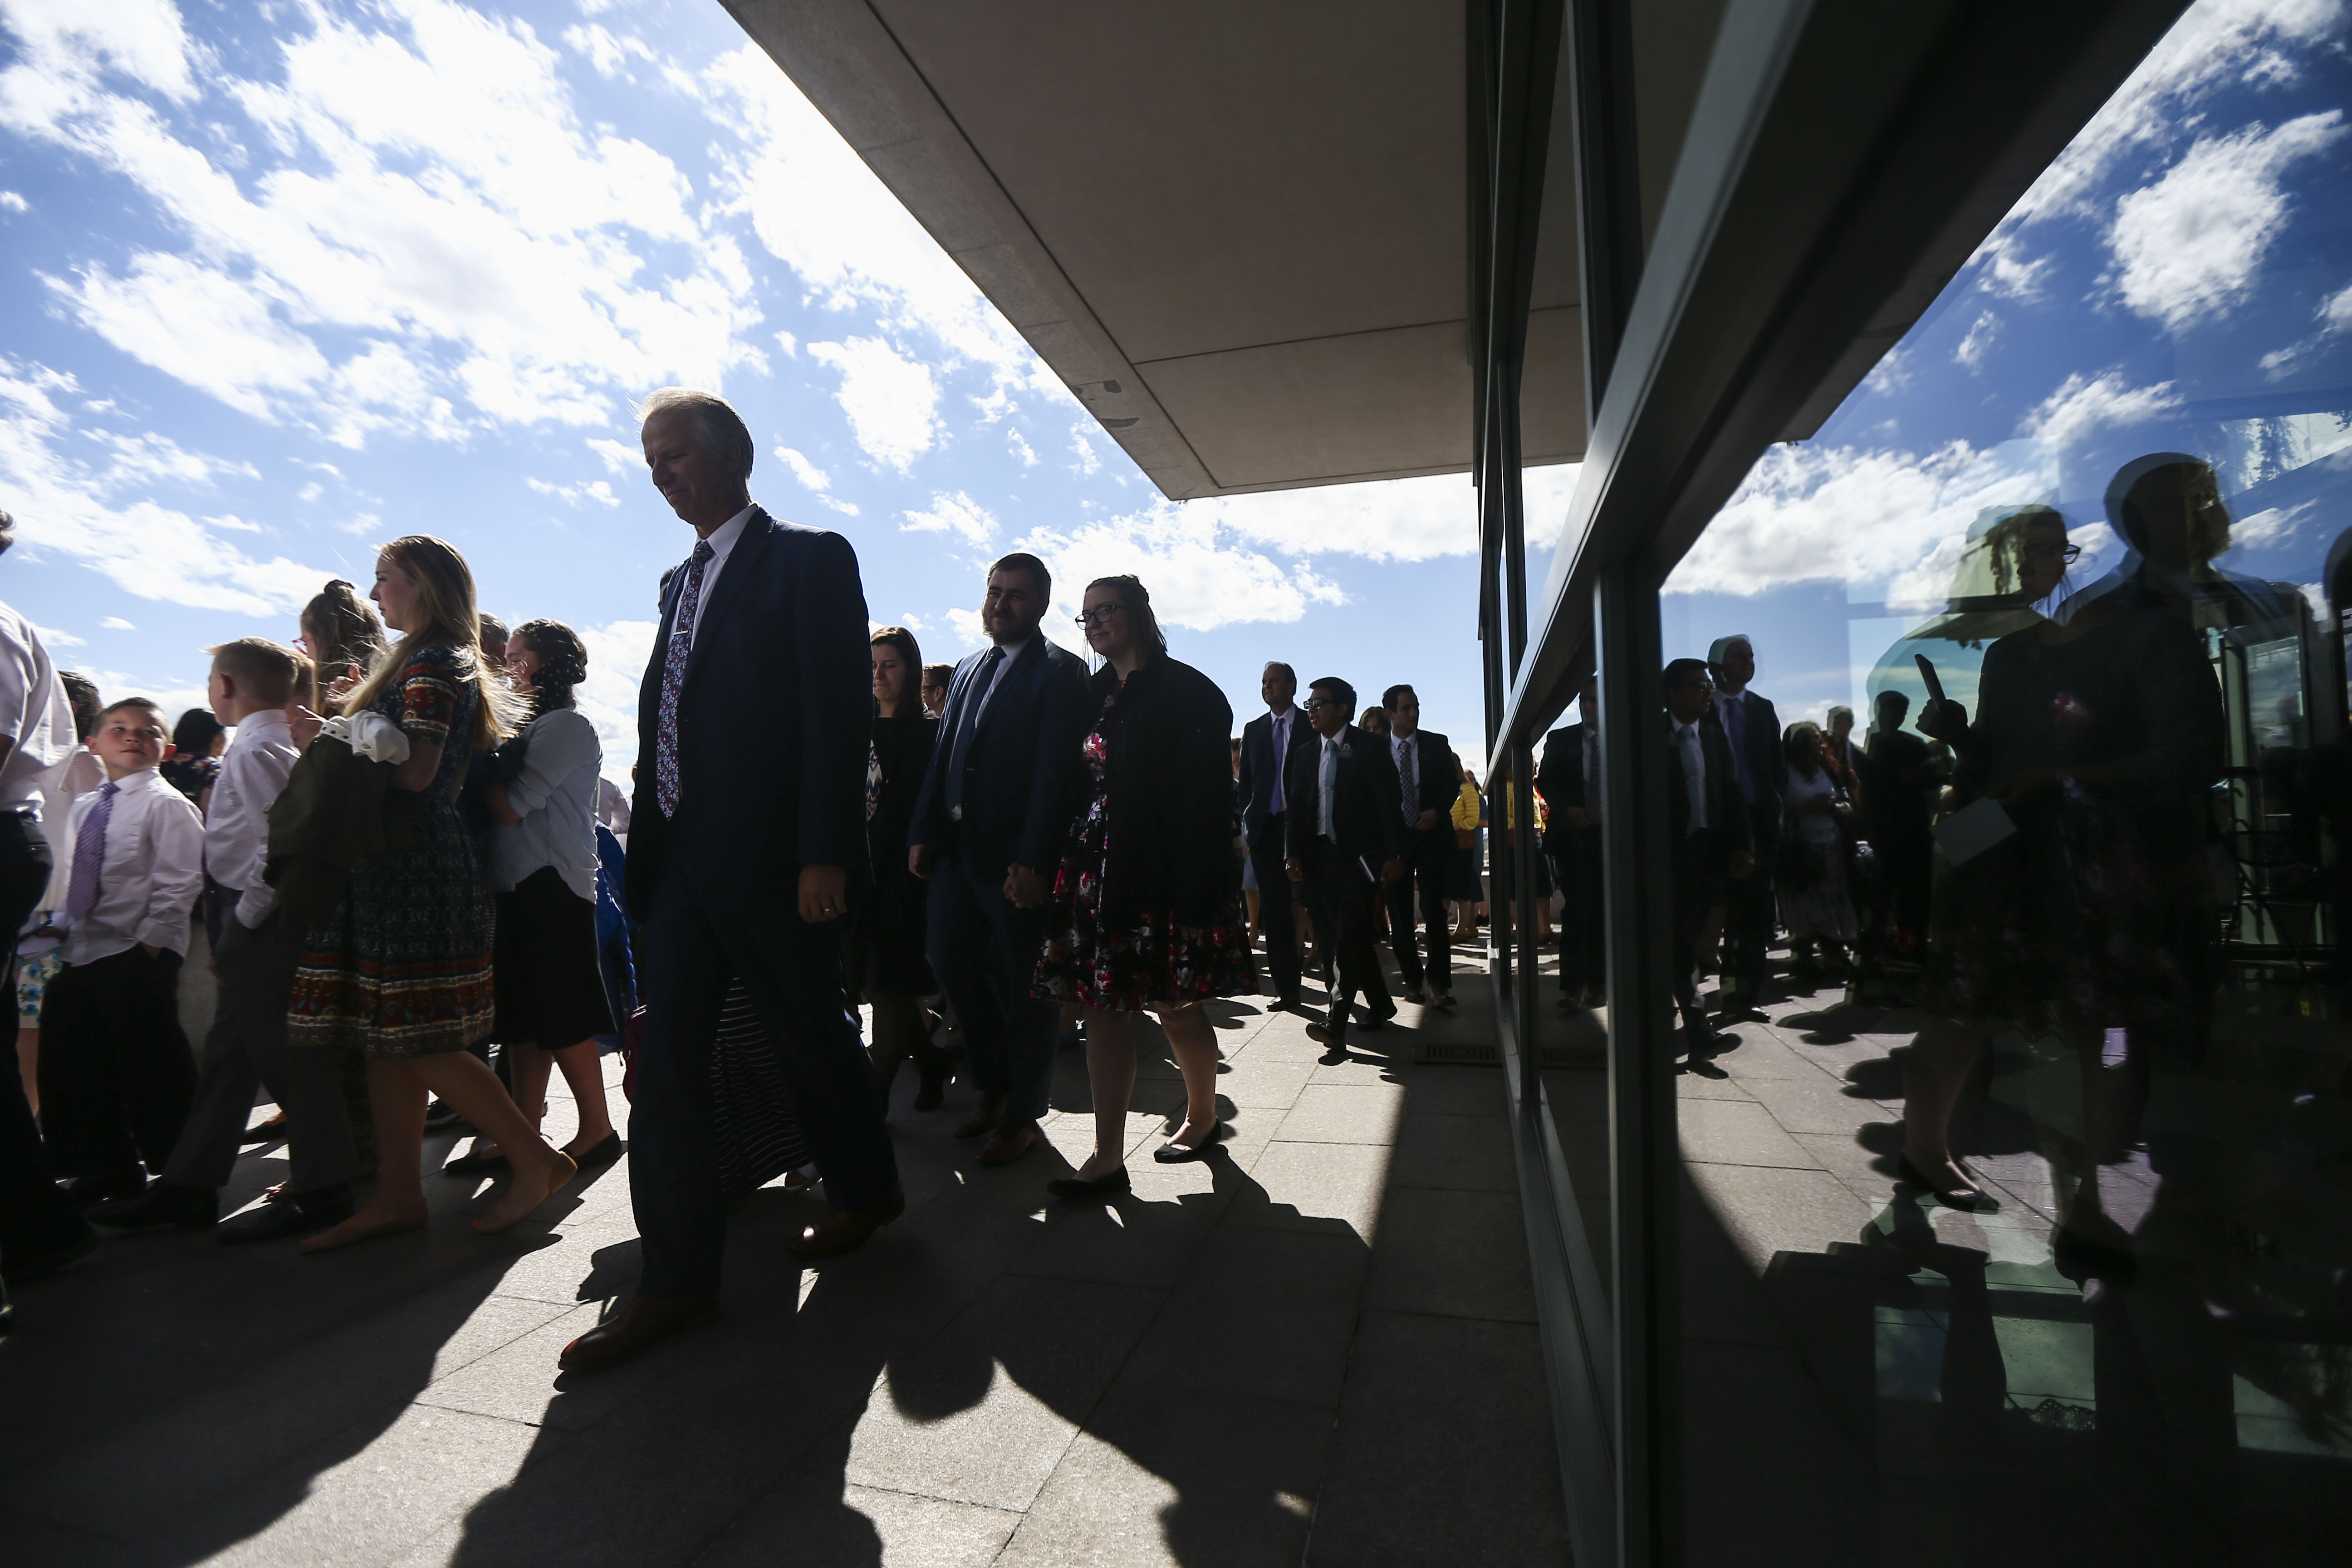 Conferencegoers leave the Conference Center after the Sunday afternoon session of the 189th Annual General Conference of The Church of Jesus Christ of Latter-day Saints in Salt Lake City on Sunday, April 7, 2019.